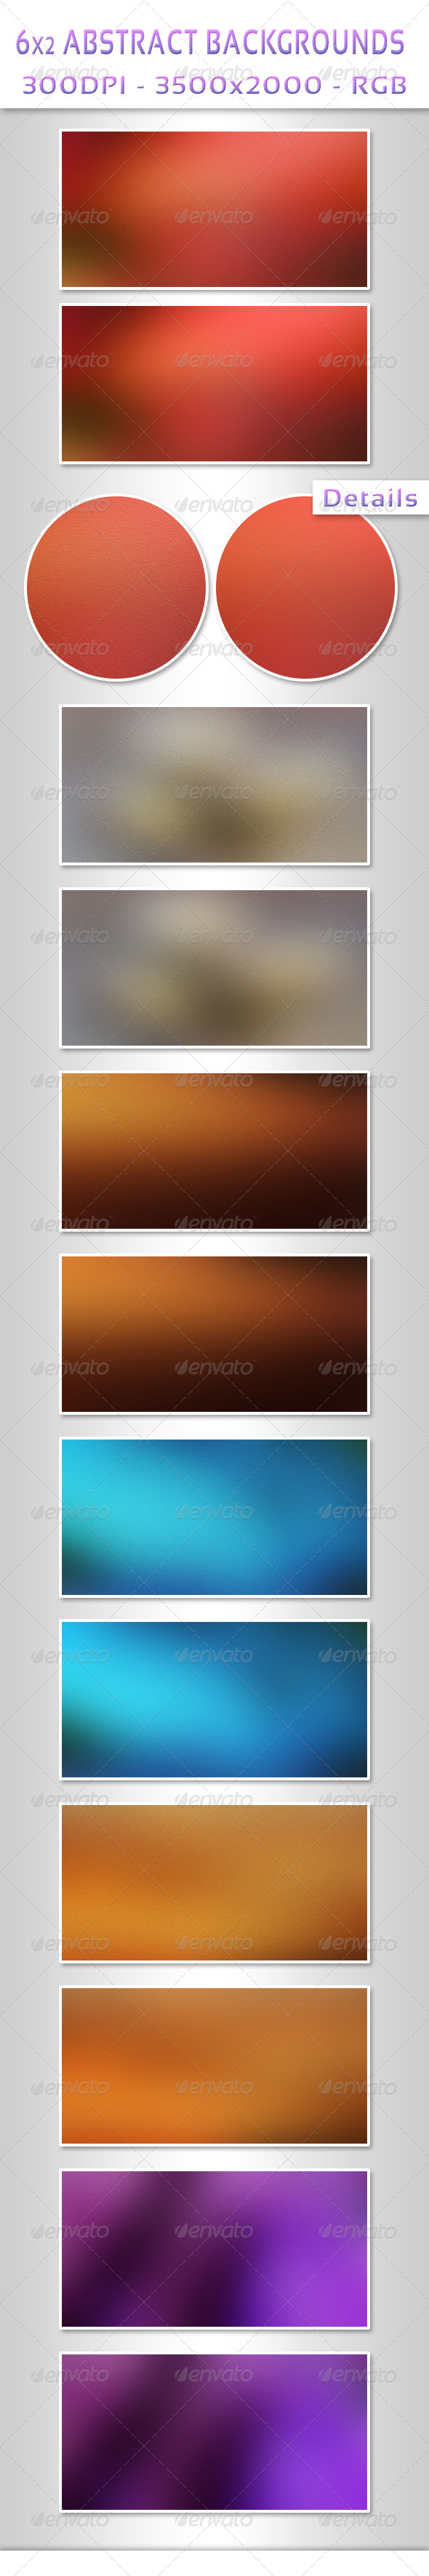 6x2 Abstract Backgrounds - Abstract Backgrounds